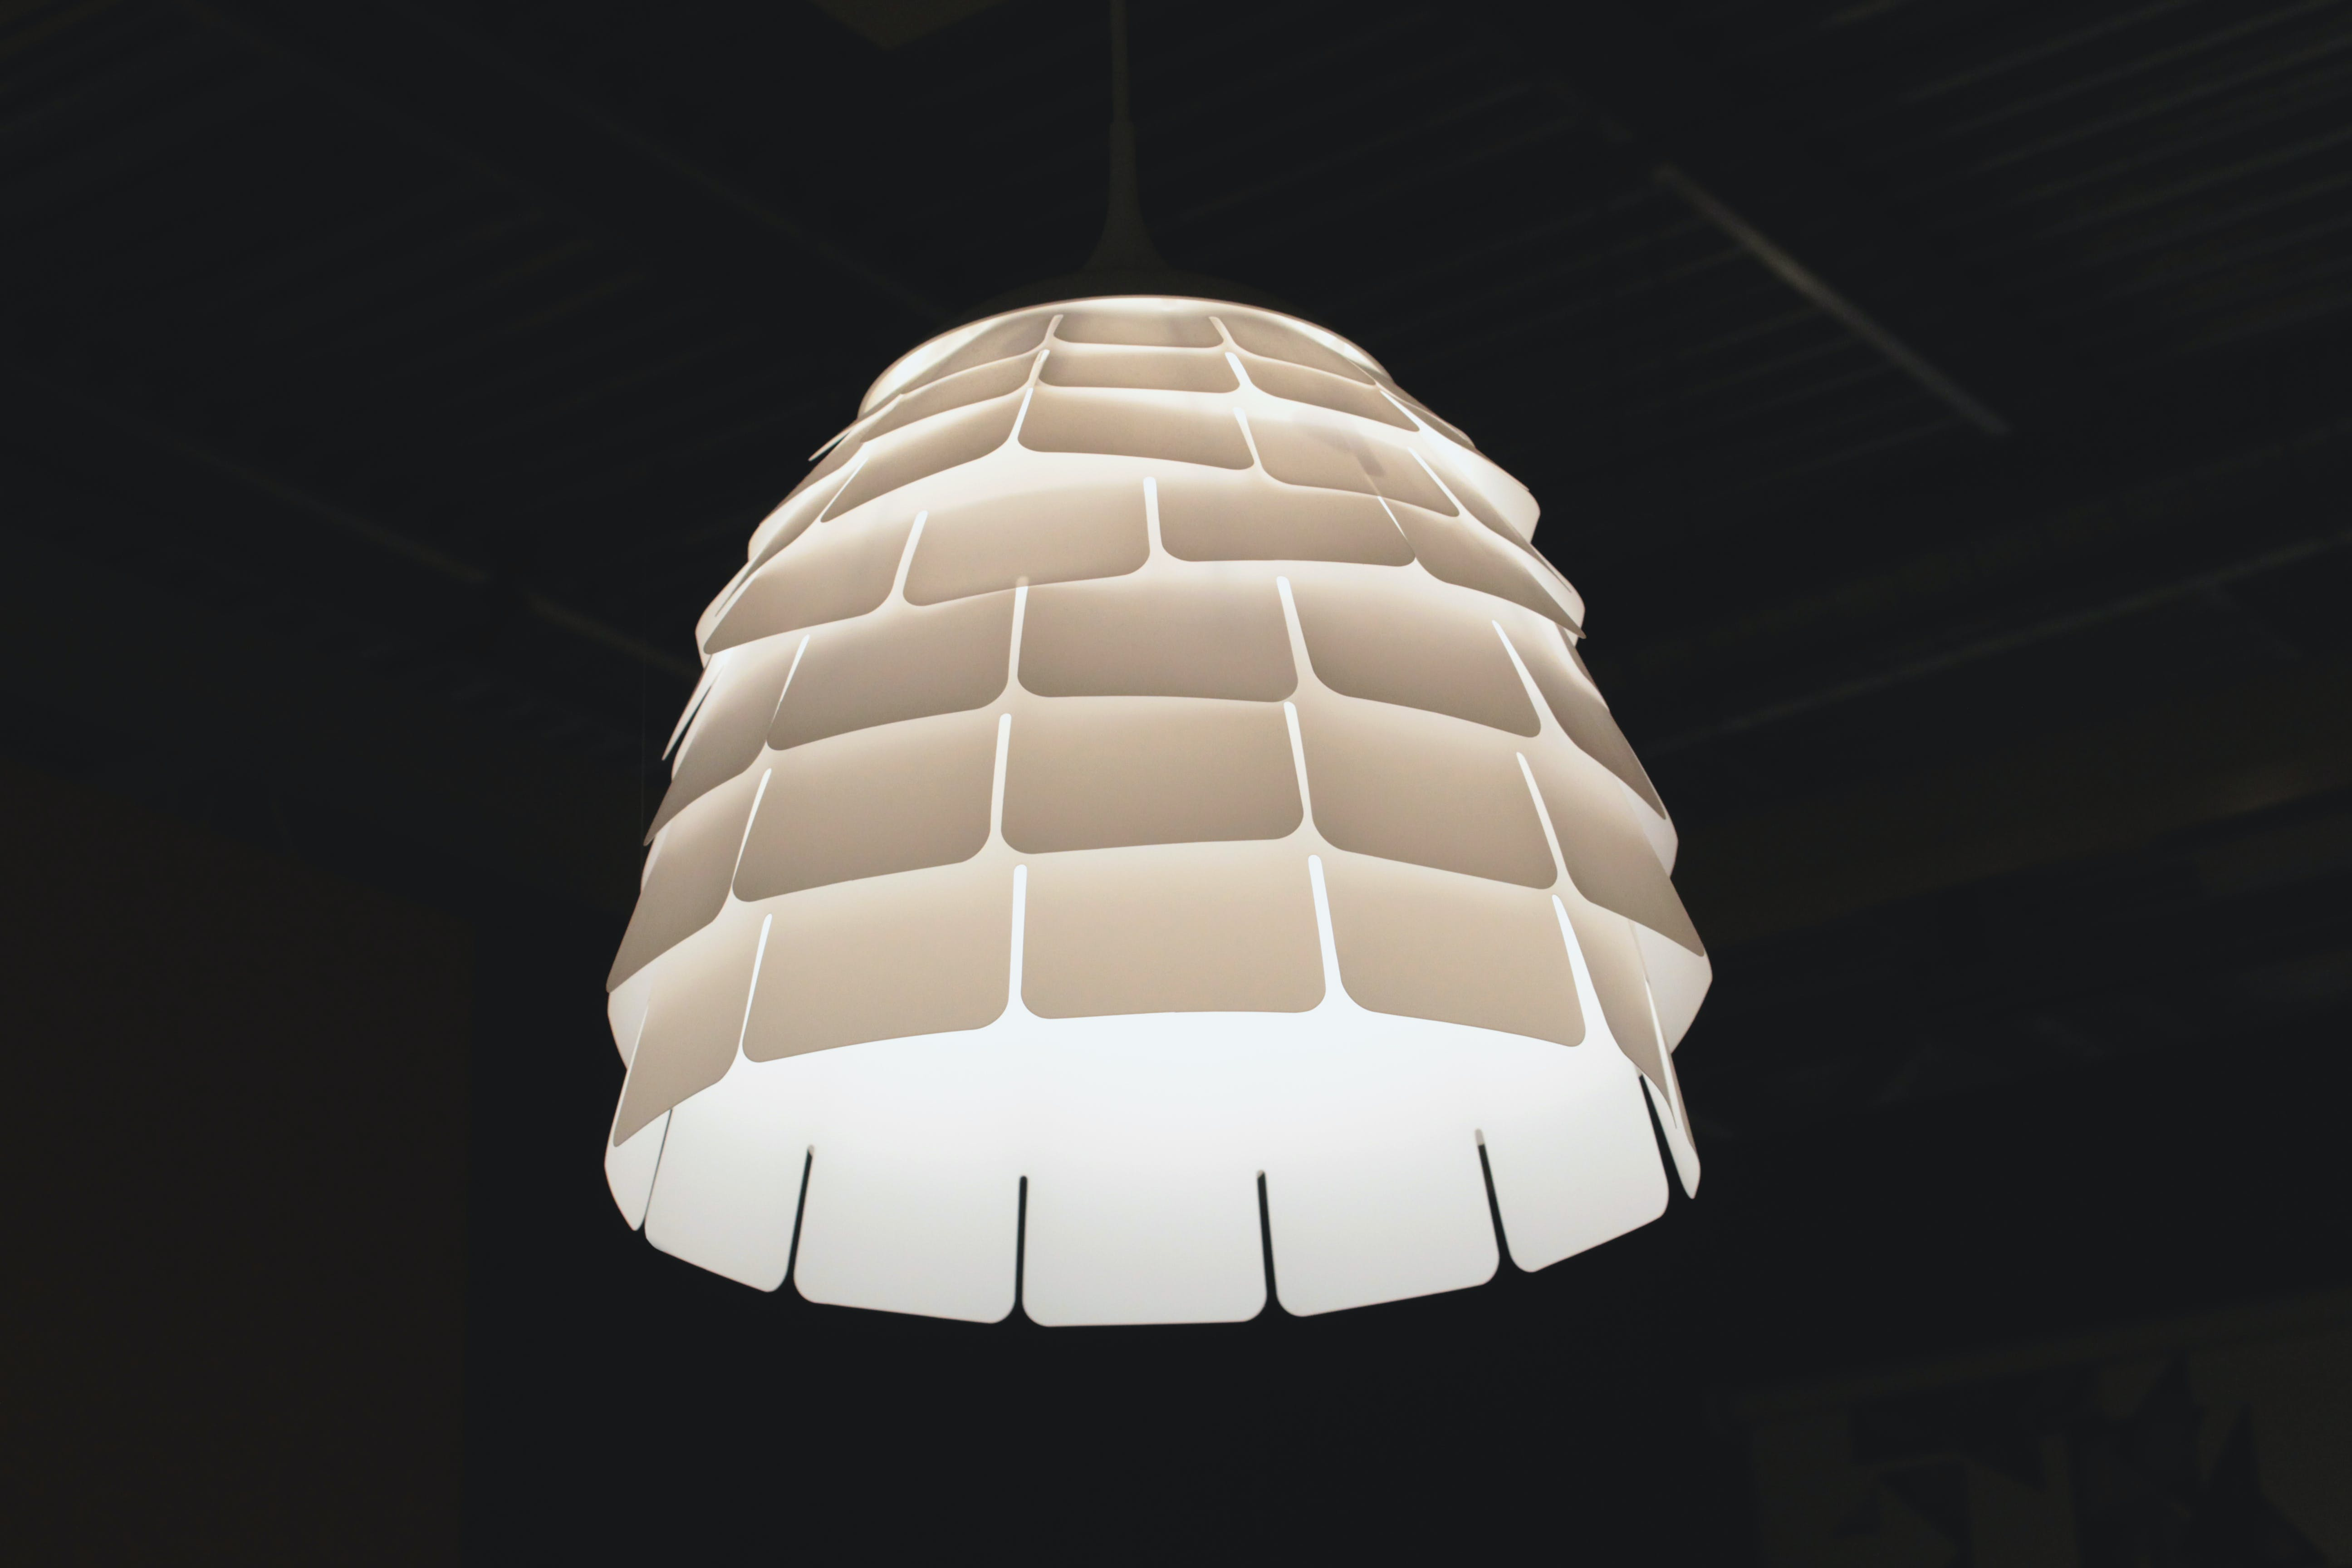 Turned on White Pendant Lamp